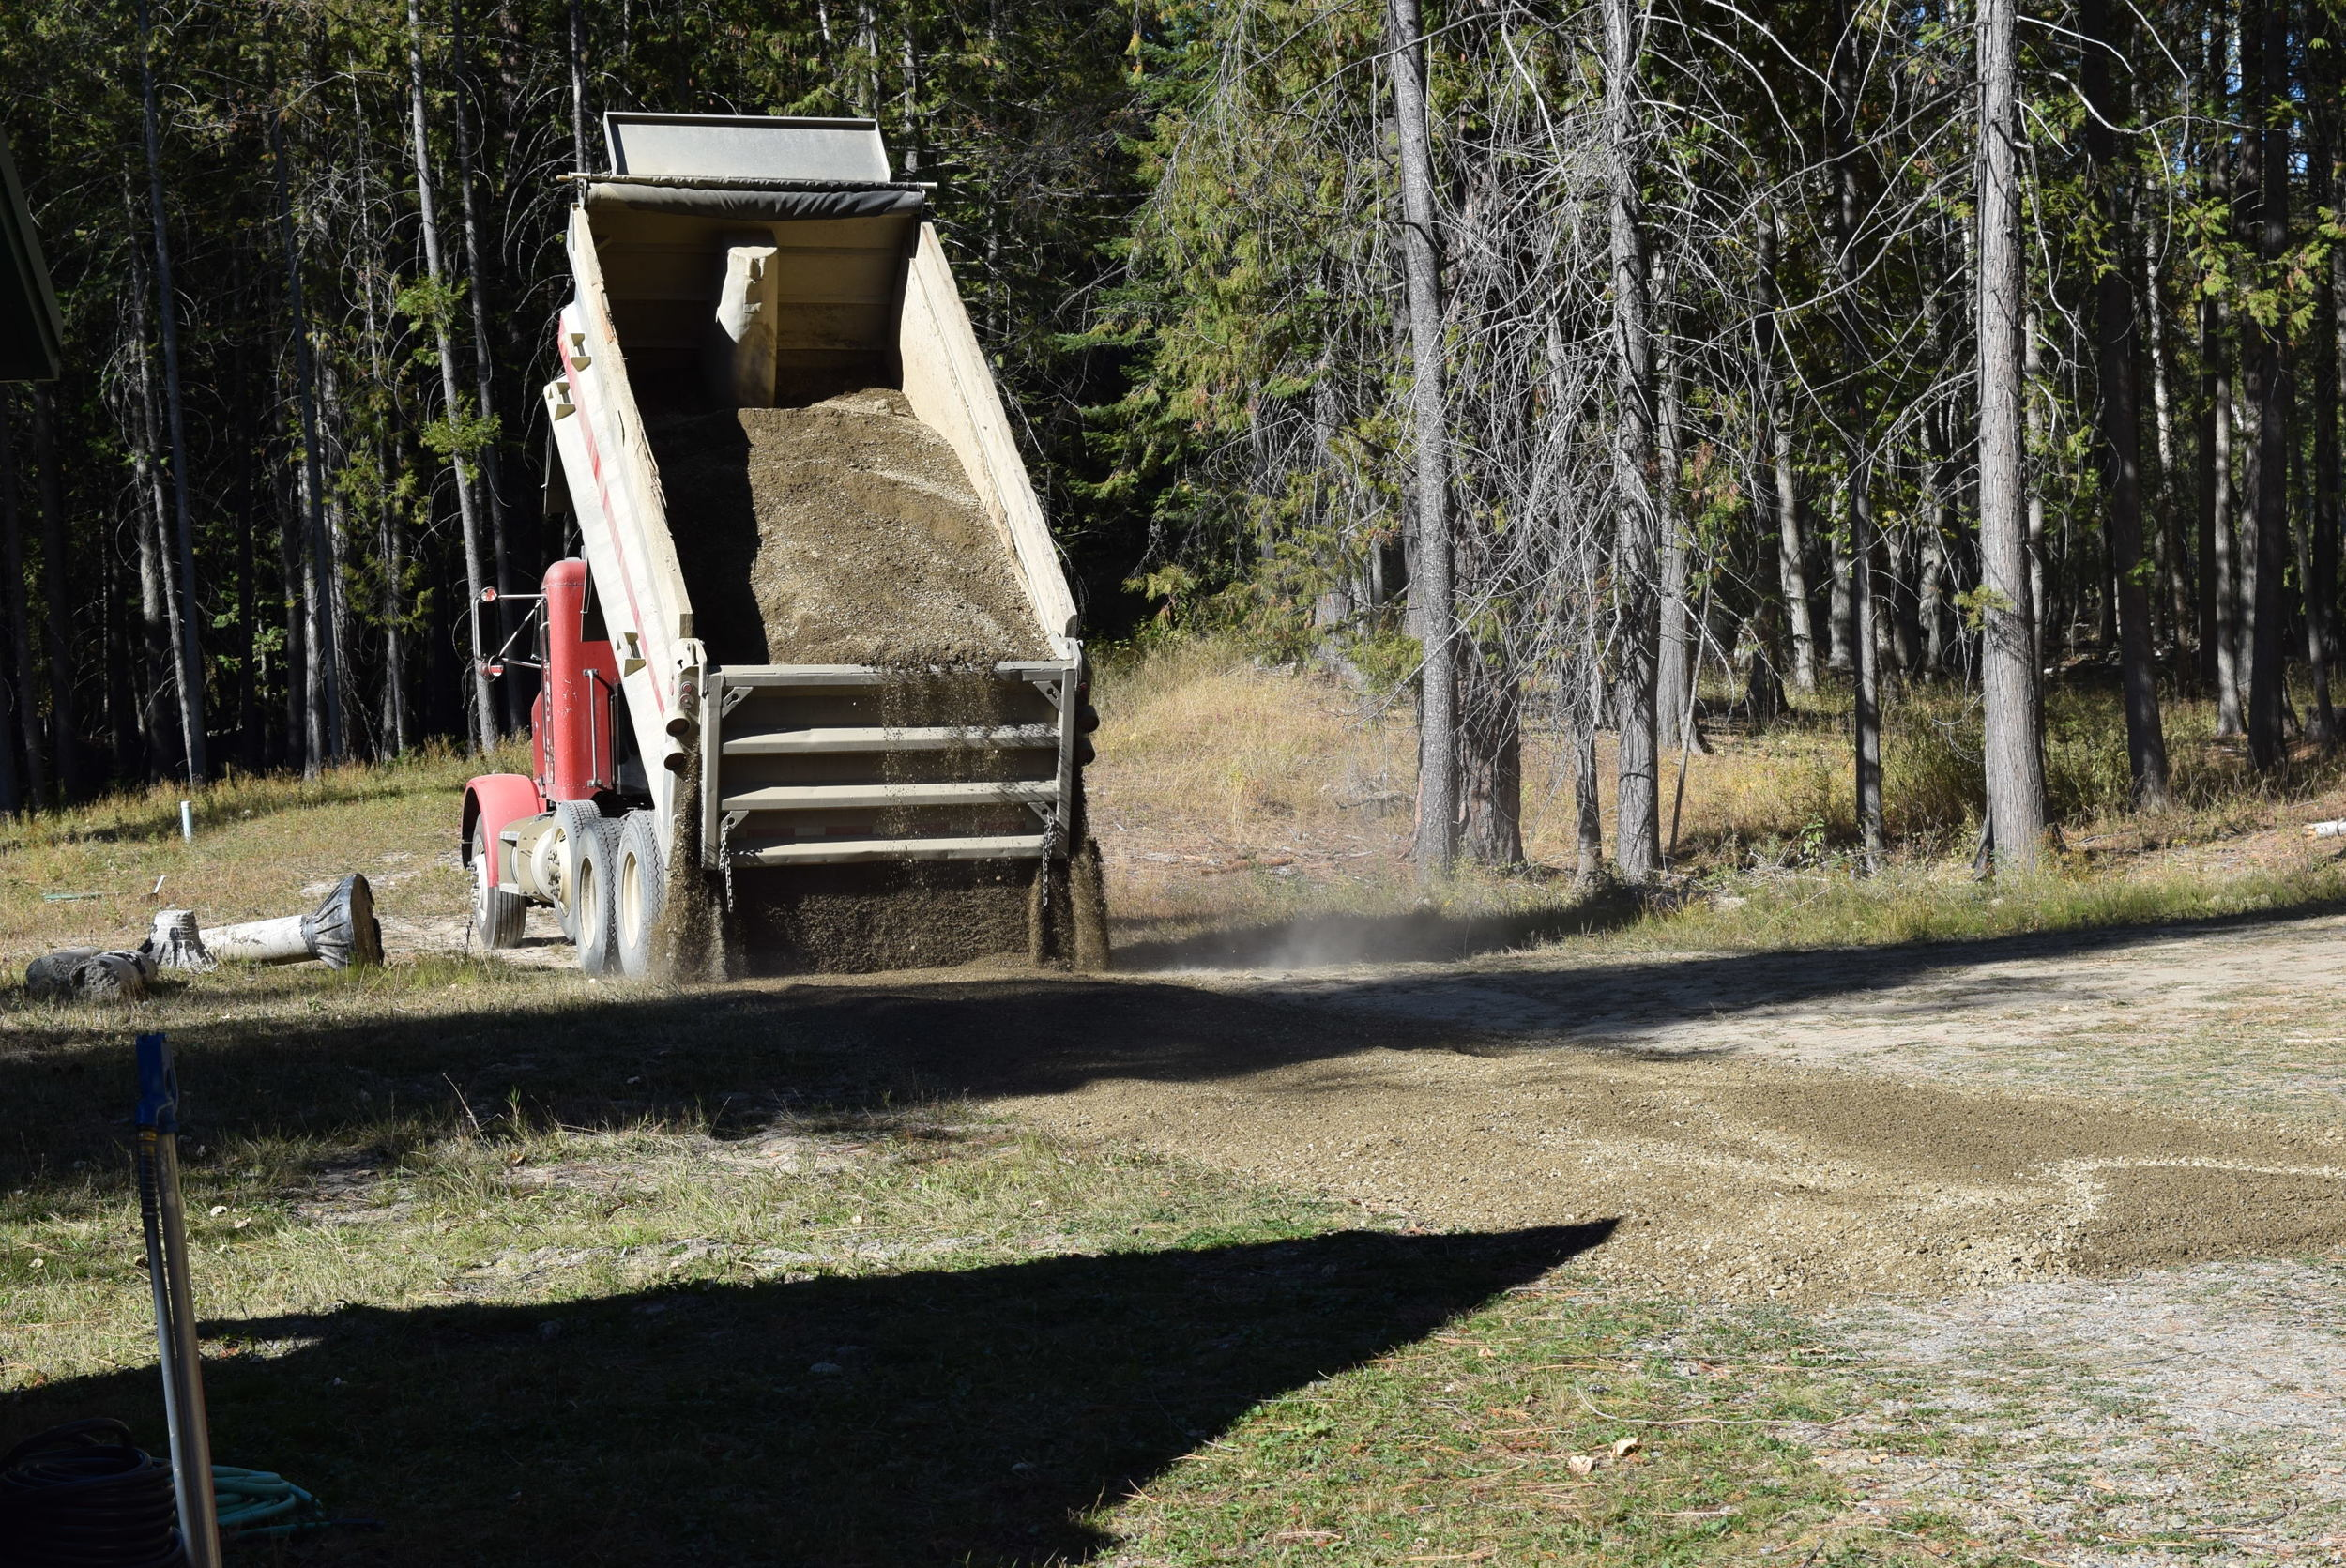 Having some gravel added to the driveway.